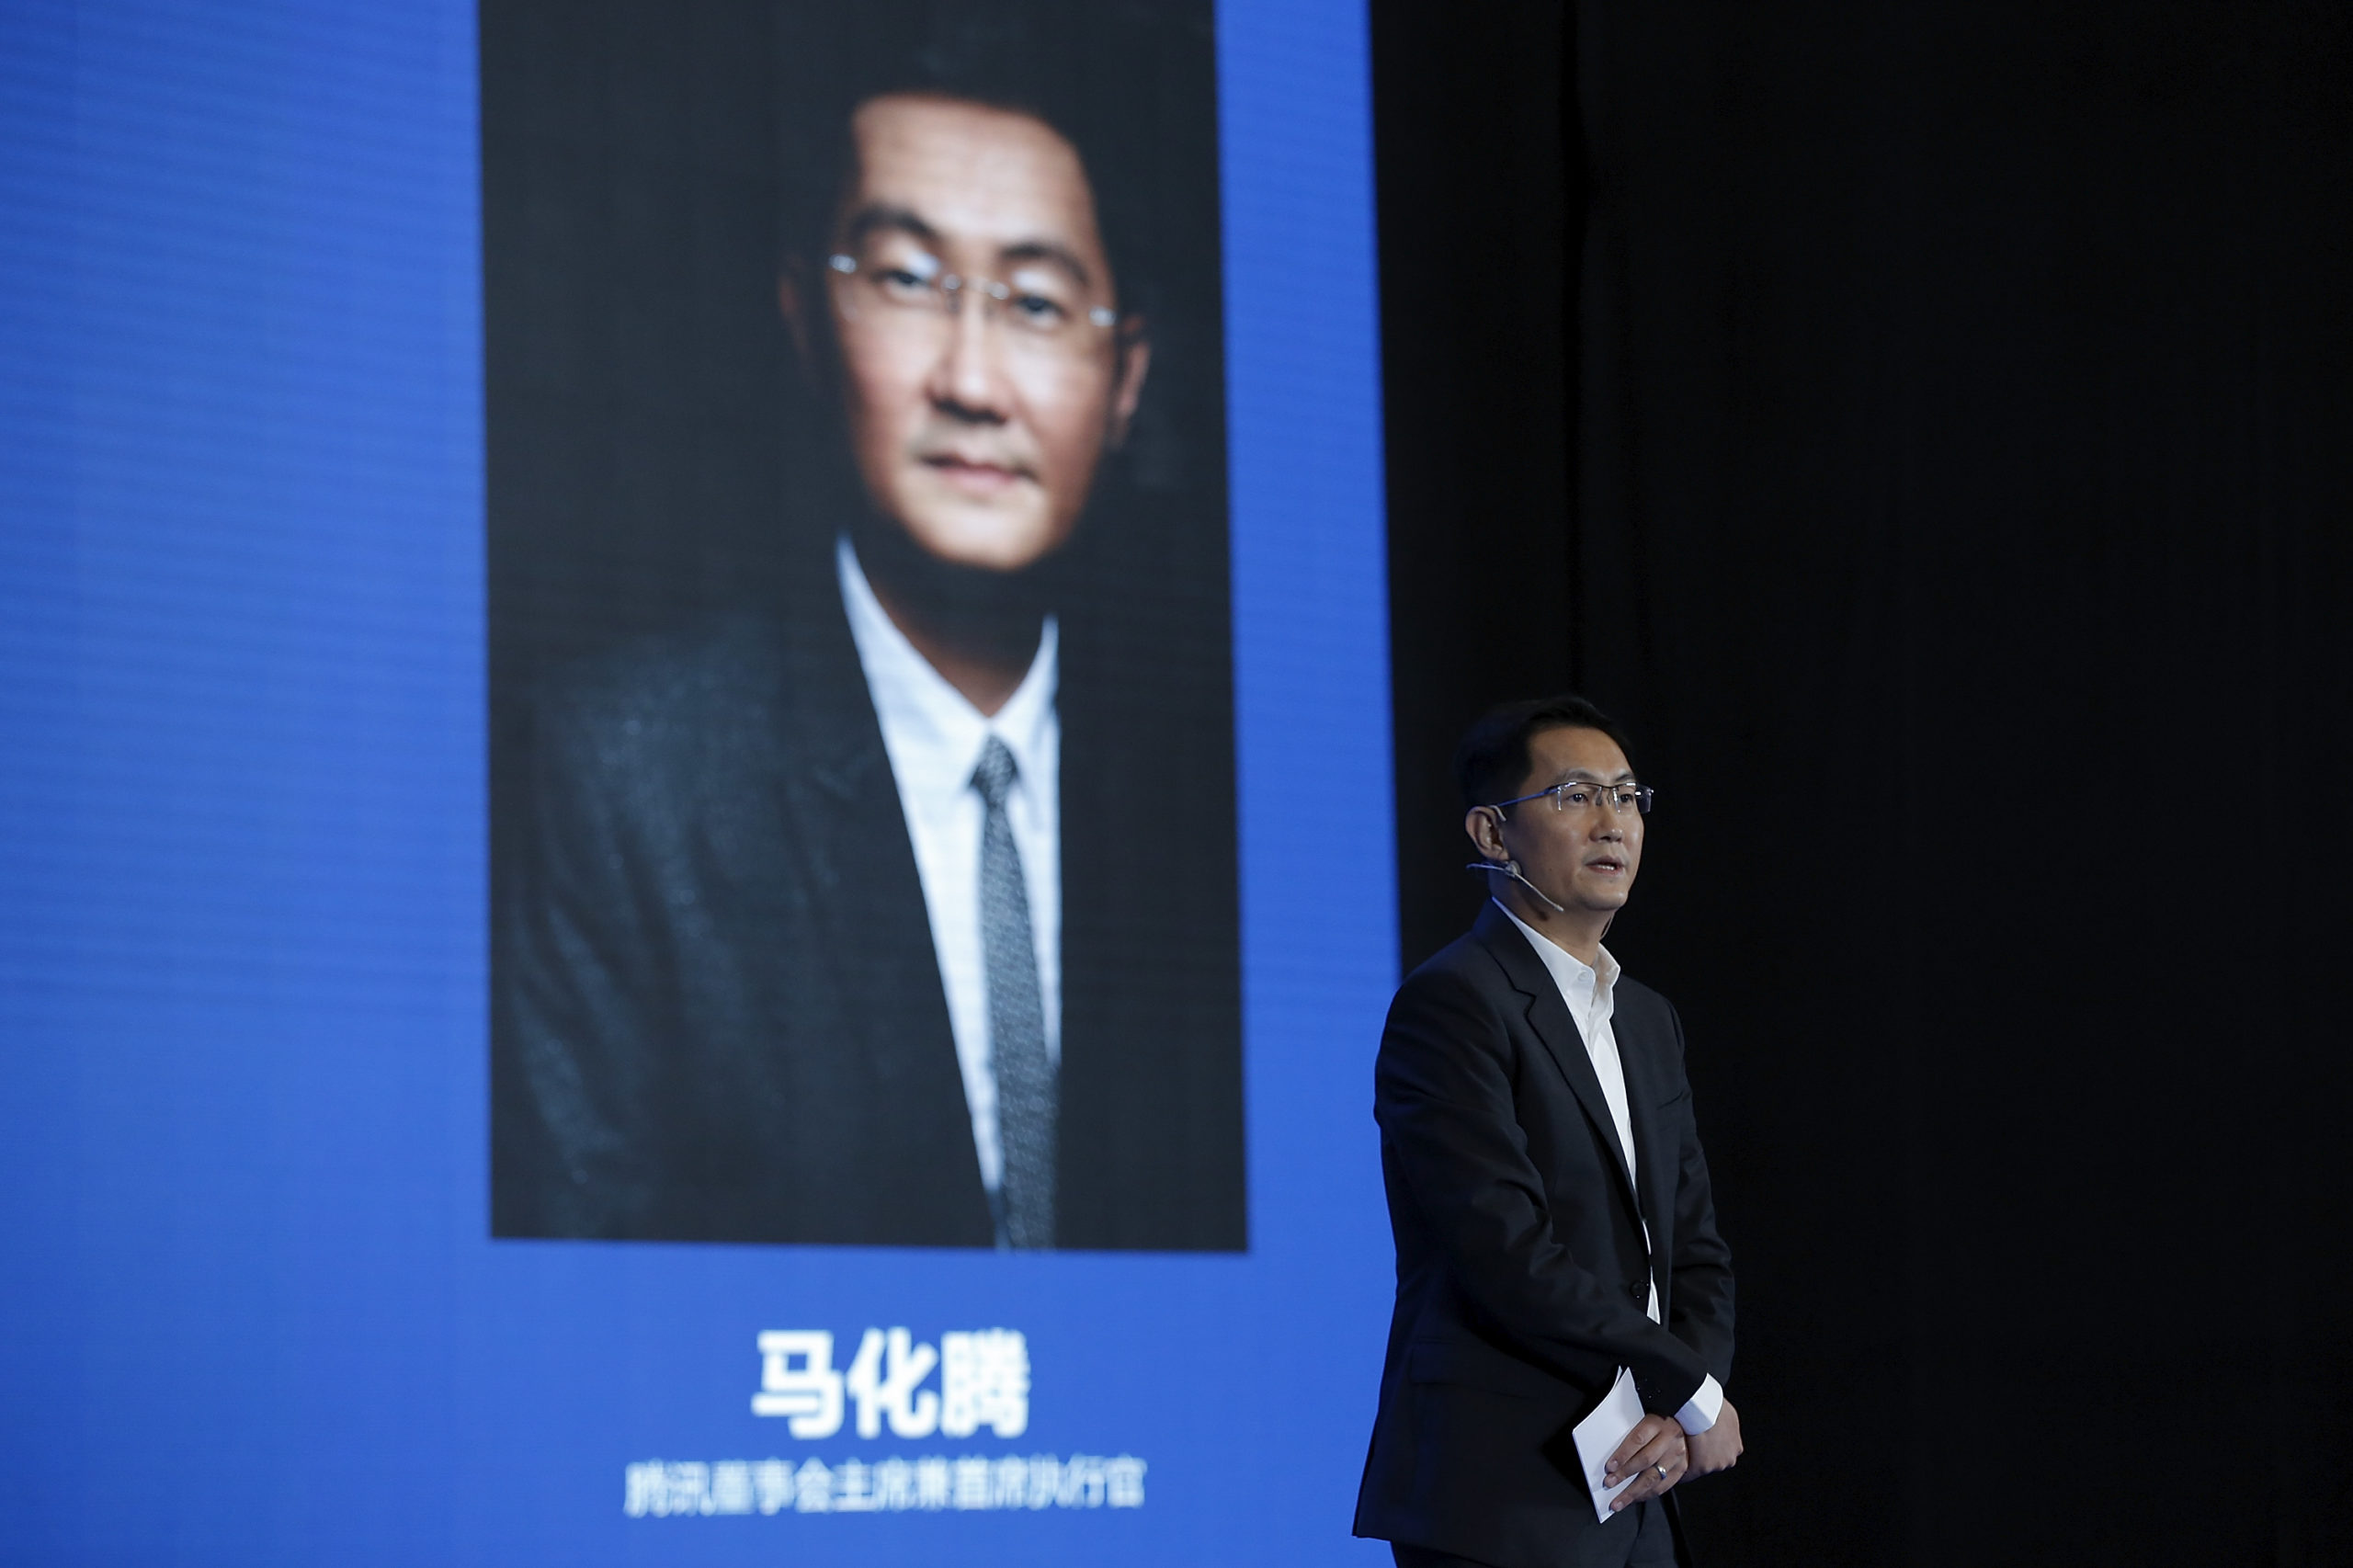 Ma Huateng, chairman and CEO of Tencent Holdings speaks during the 2017 China International Big Data Industry Expo in Guiyang, China. (Lintao Zhang/Getty Images)